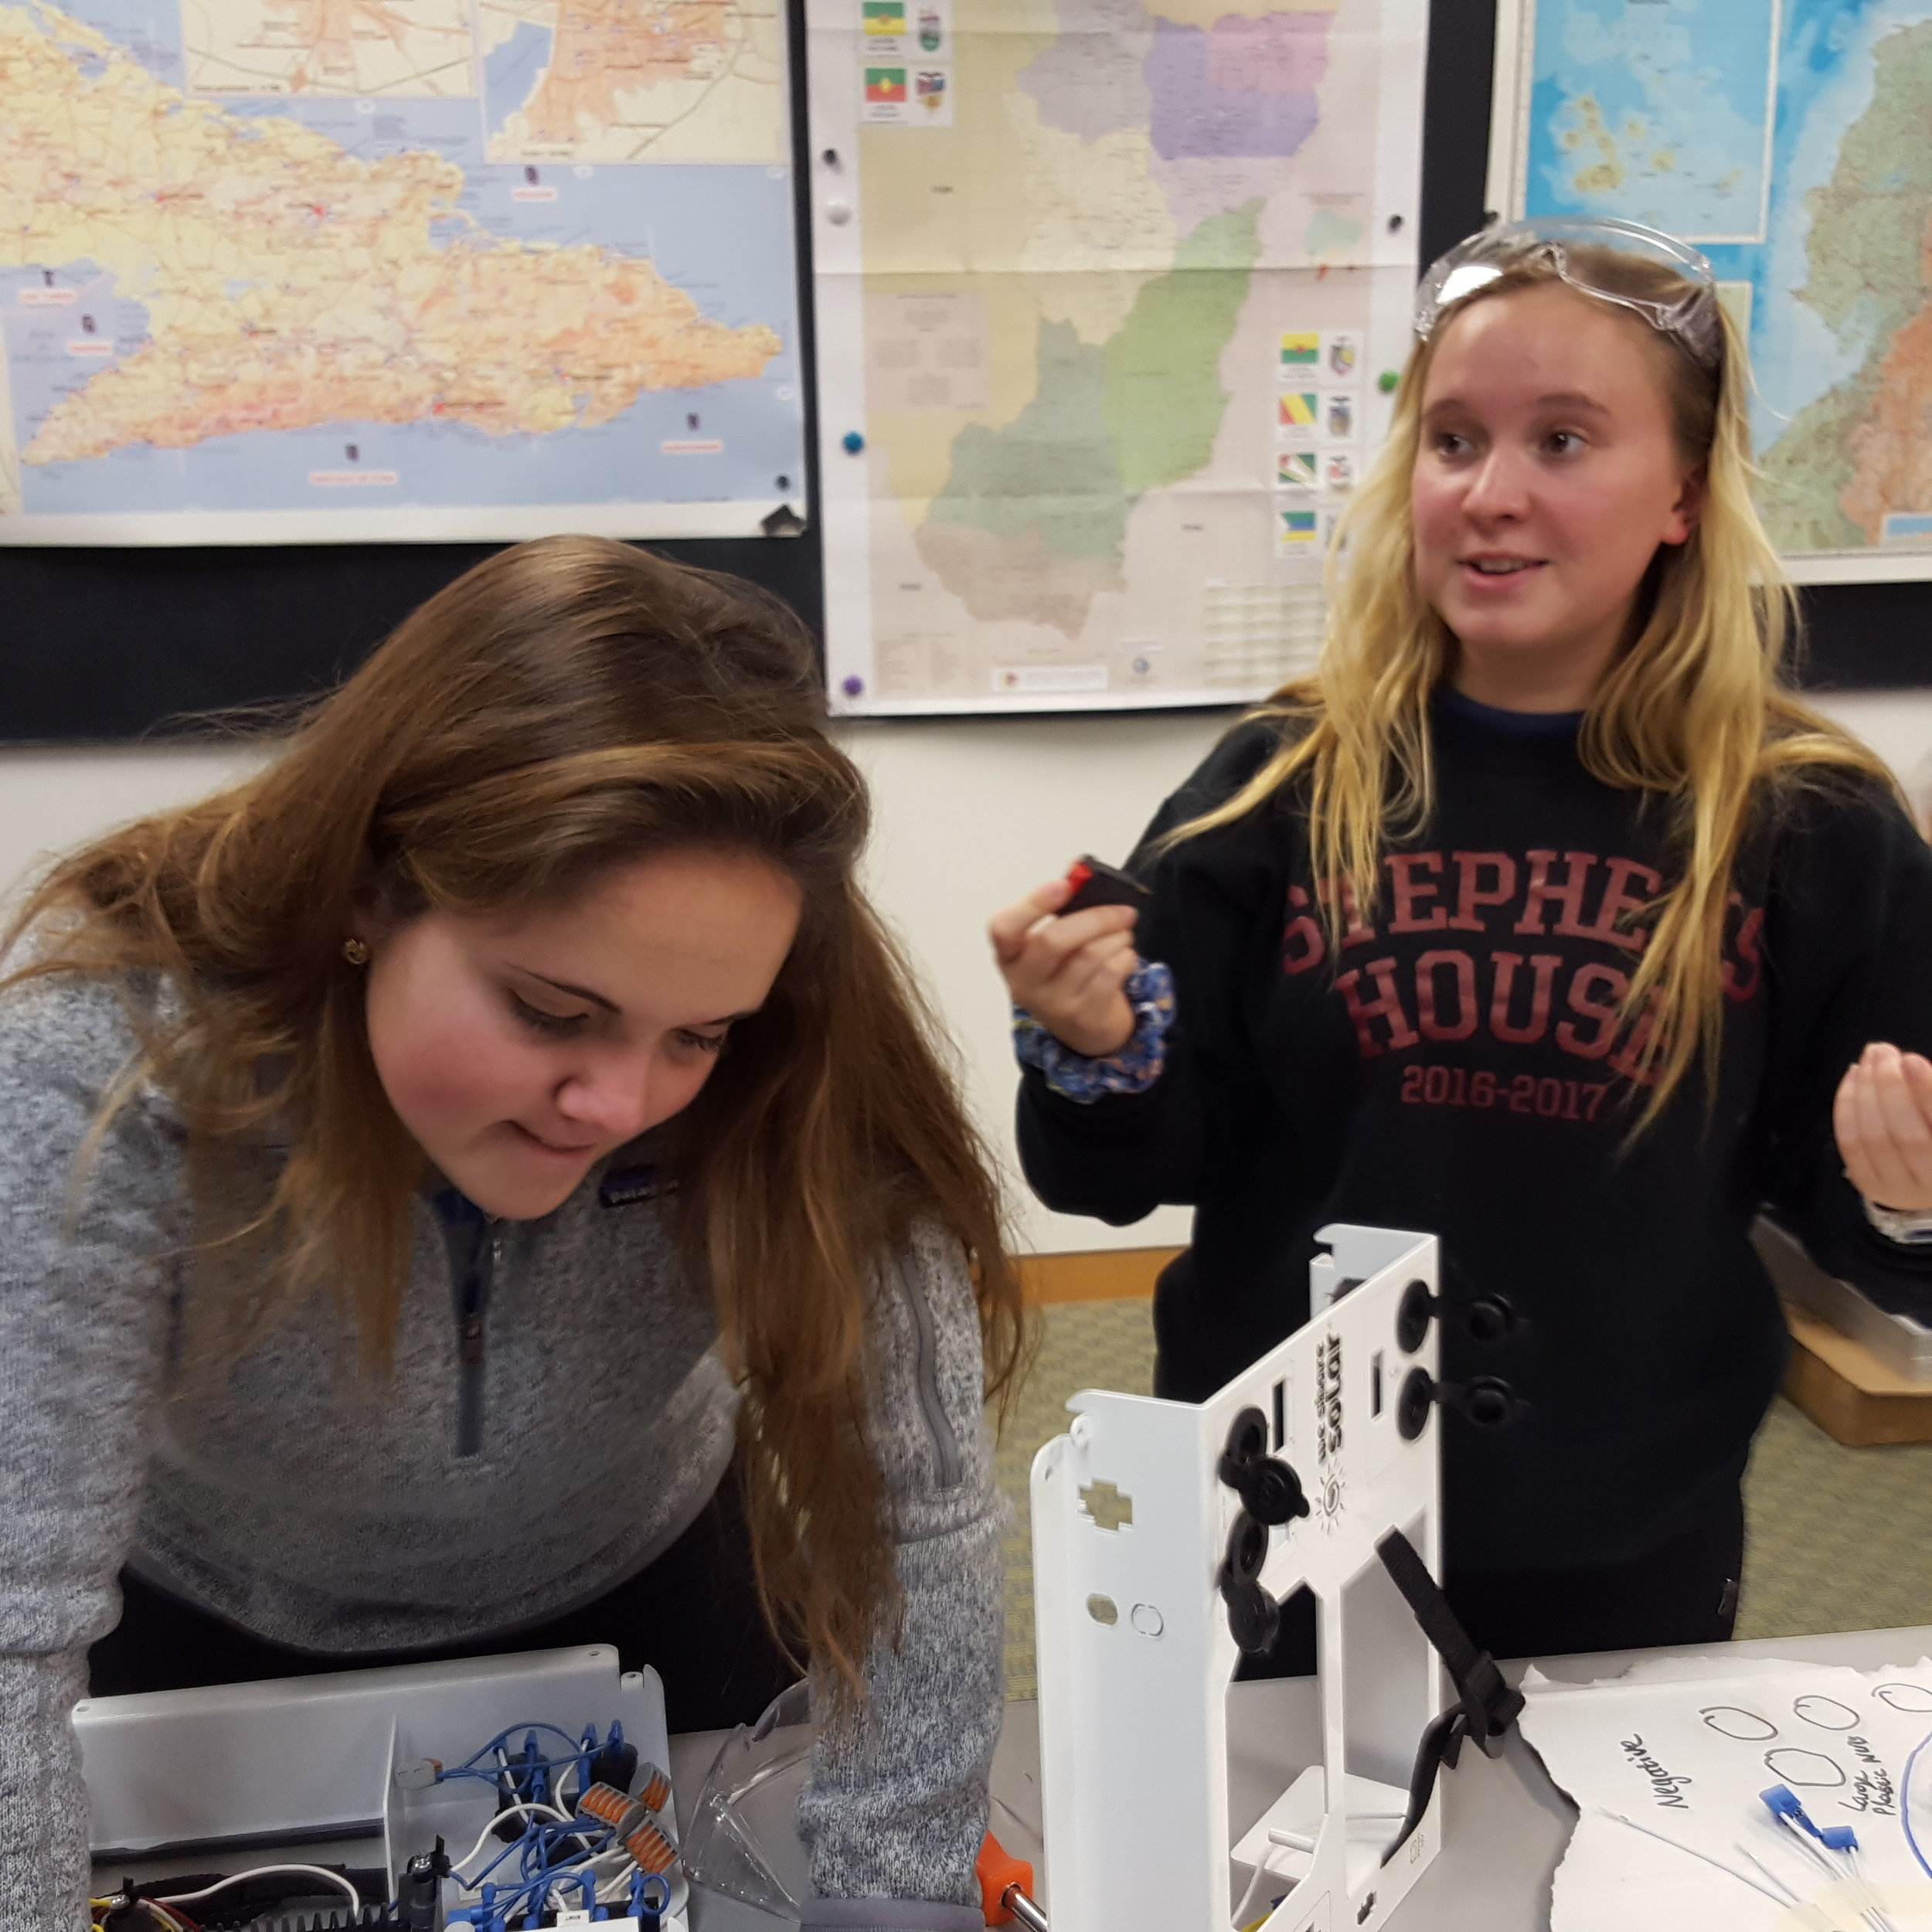 Island School alumnae Kyra Hall (Fall 2016) and Annika Goldman (Spring 2016) putting the solar controller components together to fly with Chris and Pam.